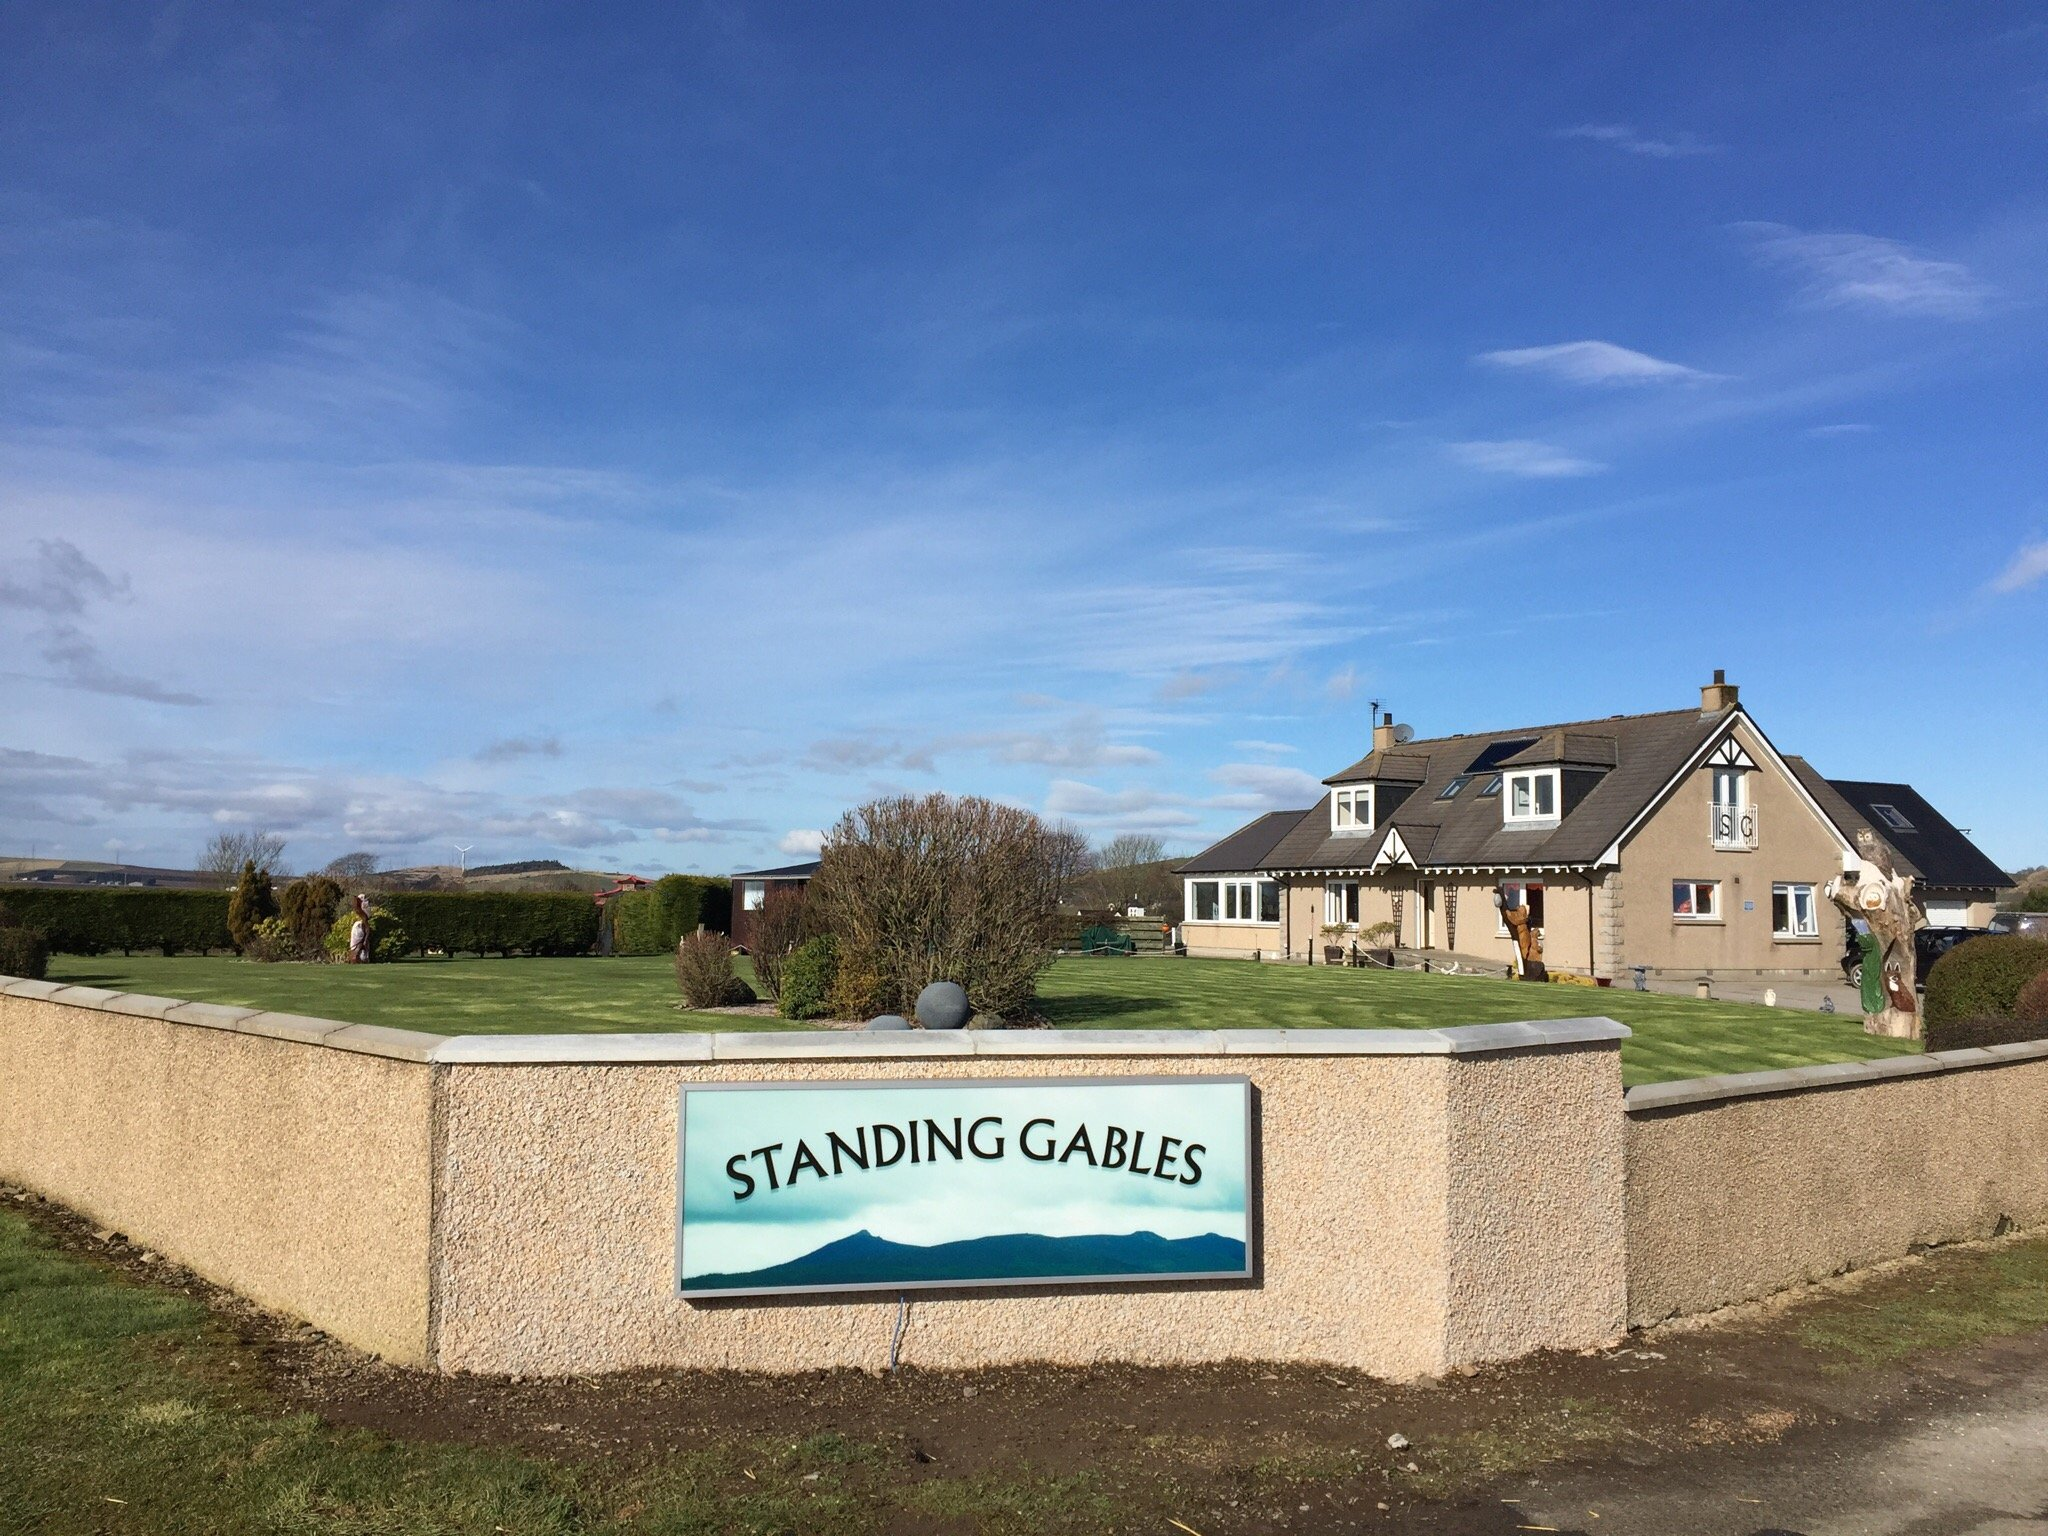 standing gables bed & breakfast (inverurie) - b&b reviews & photos